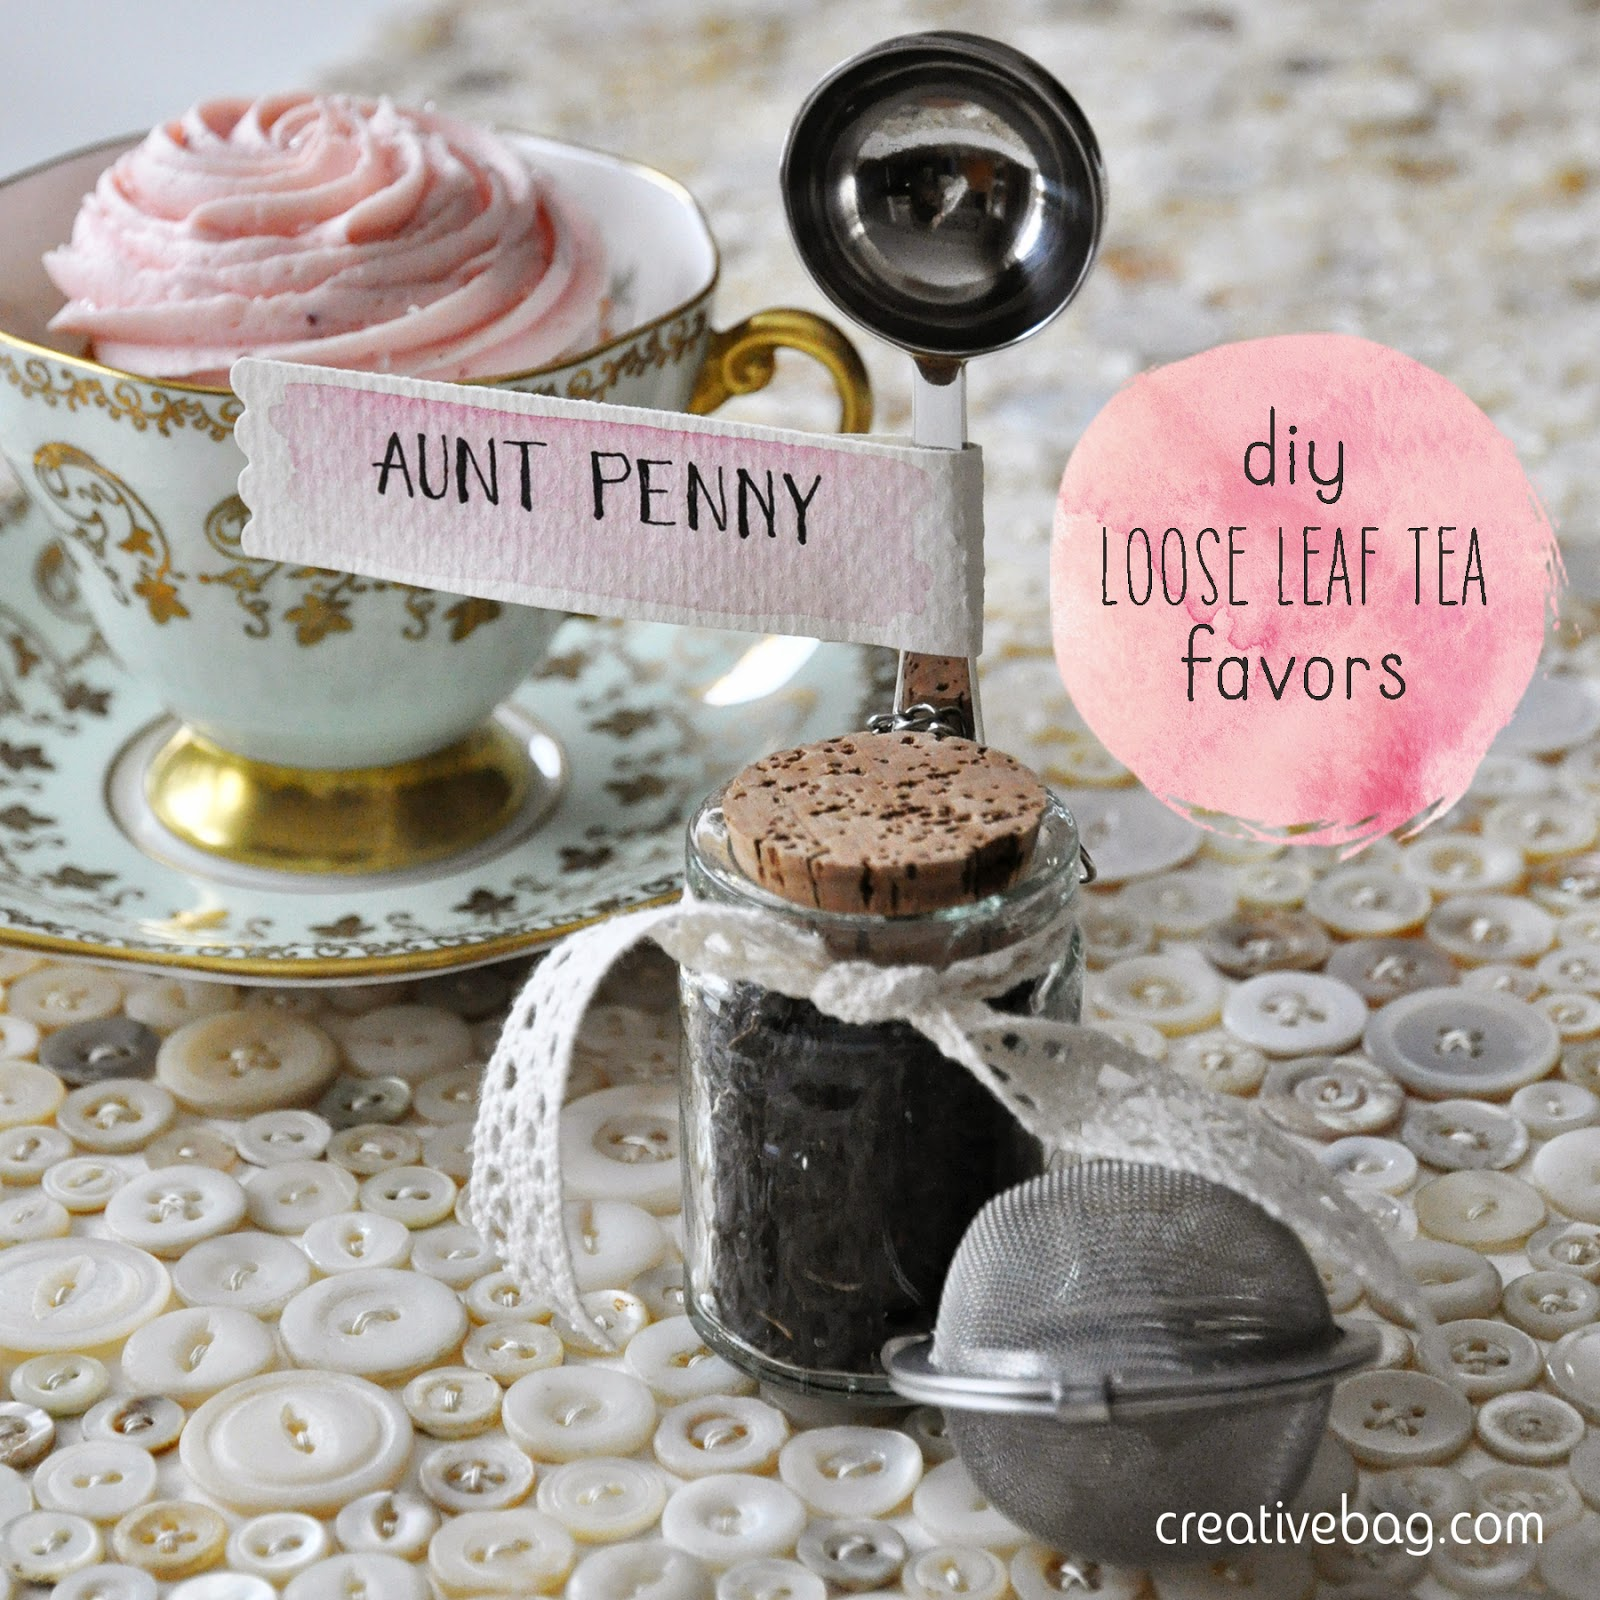 diy tea favor inspiration from Creative Bag